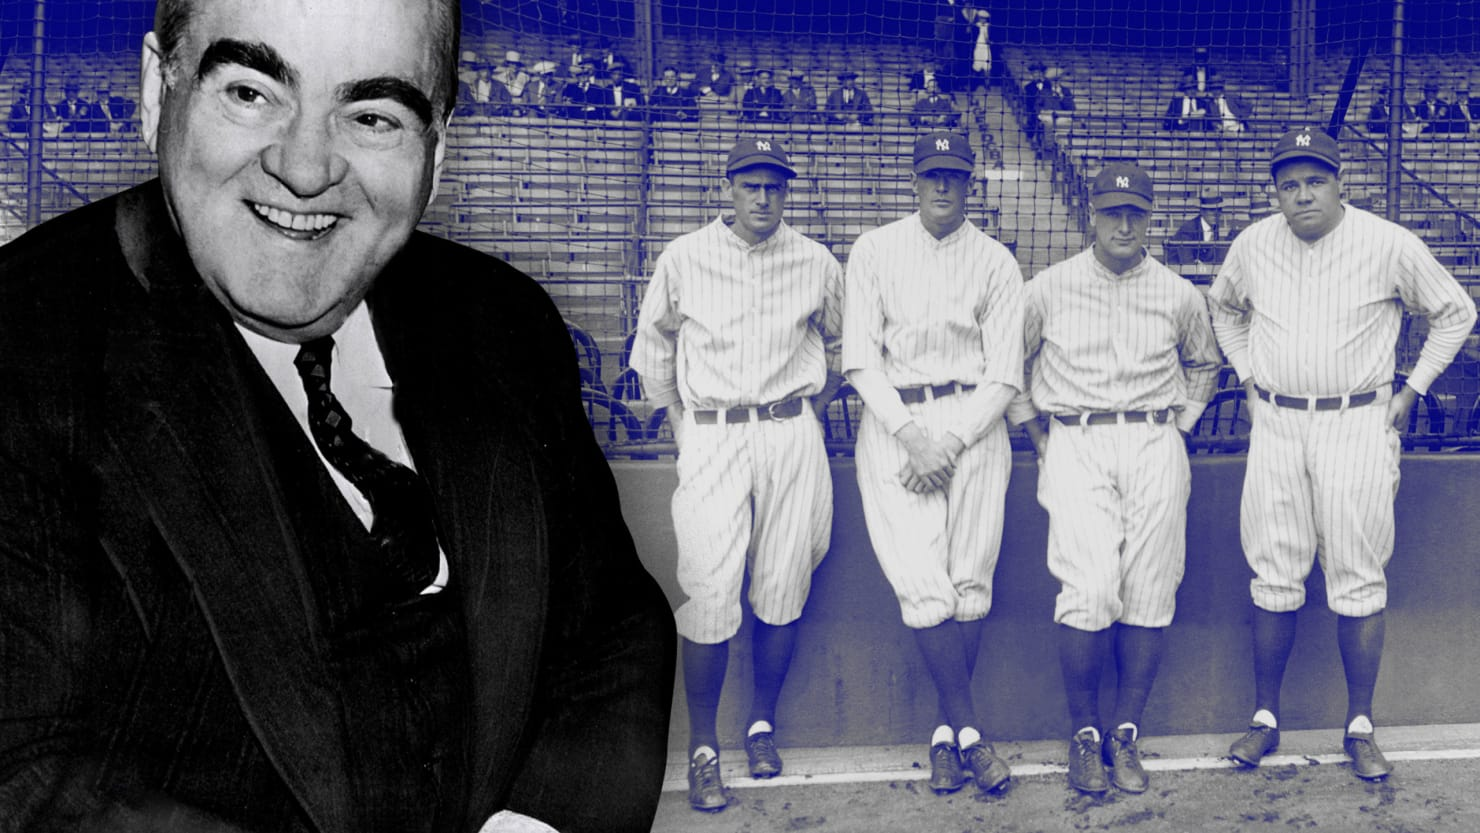 The Man Who Created Yankees' Murderers' Row